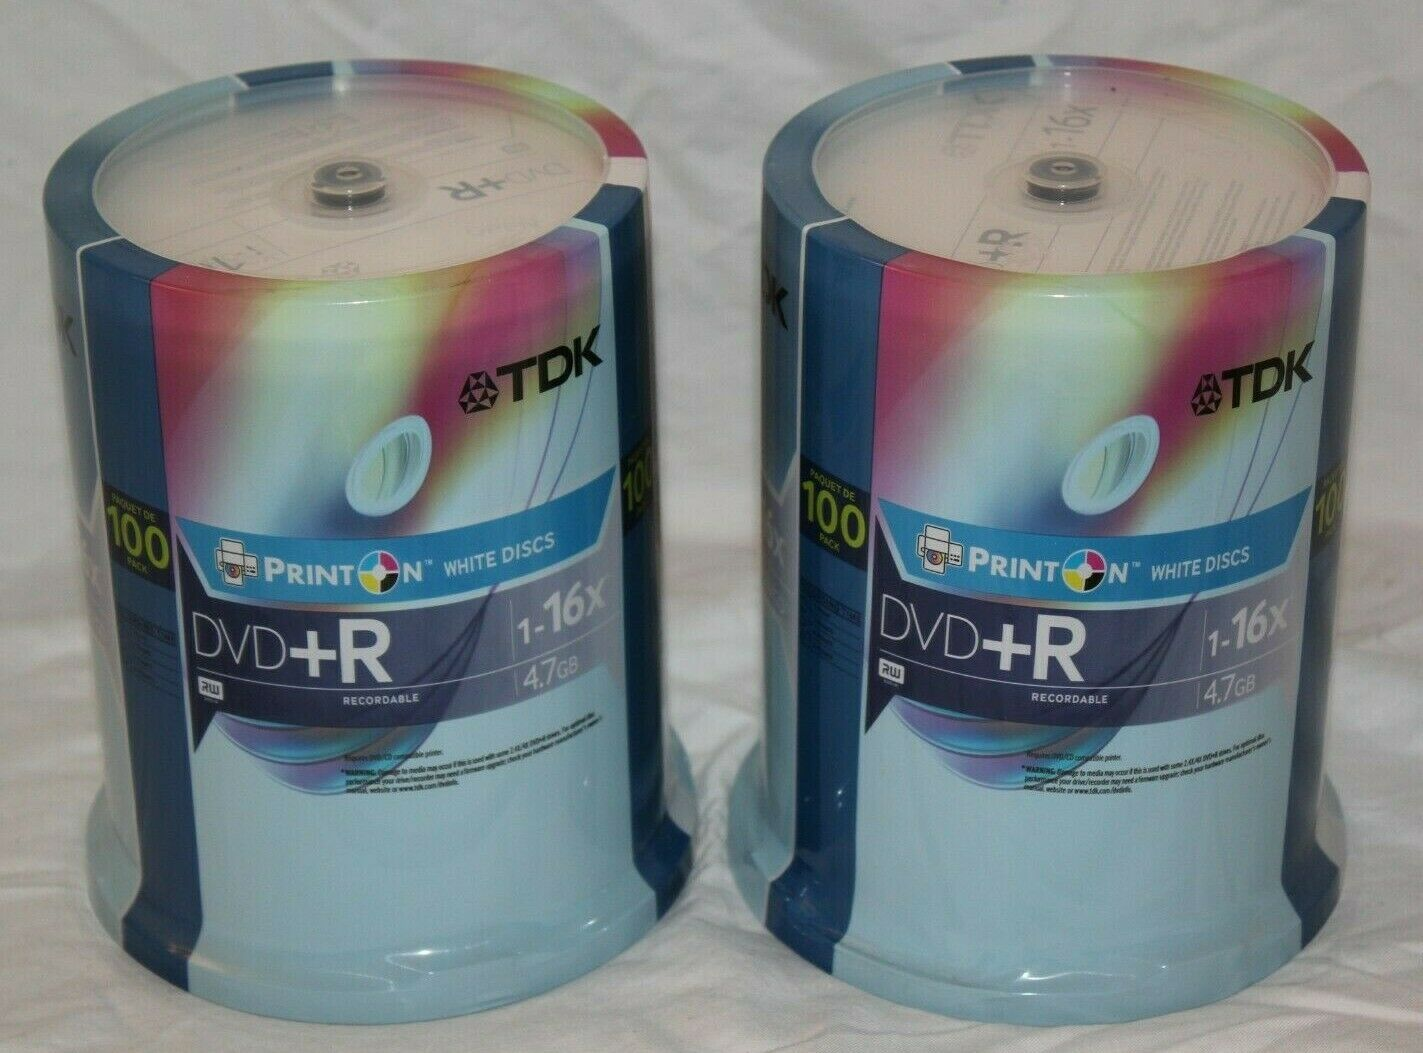 200 dvd r recordable print on white